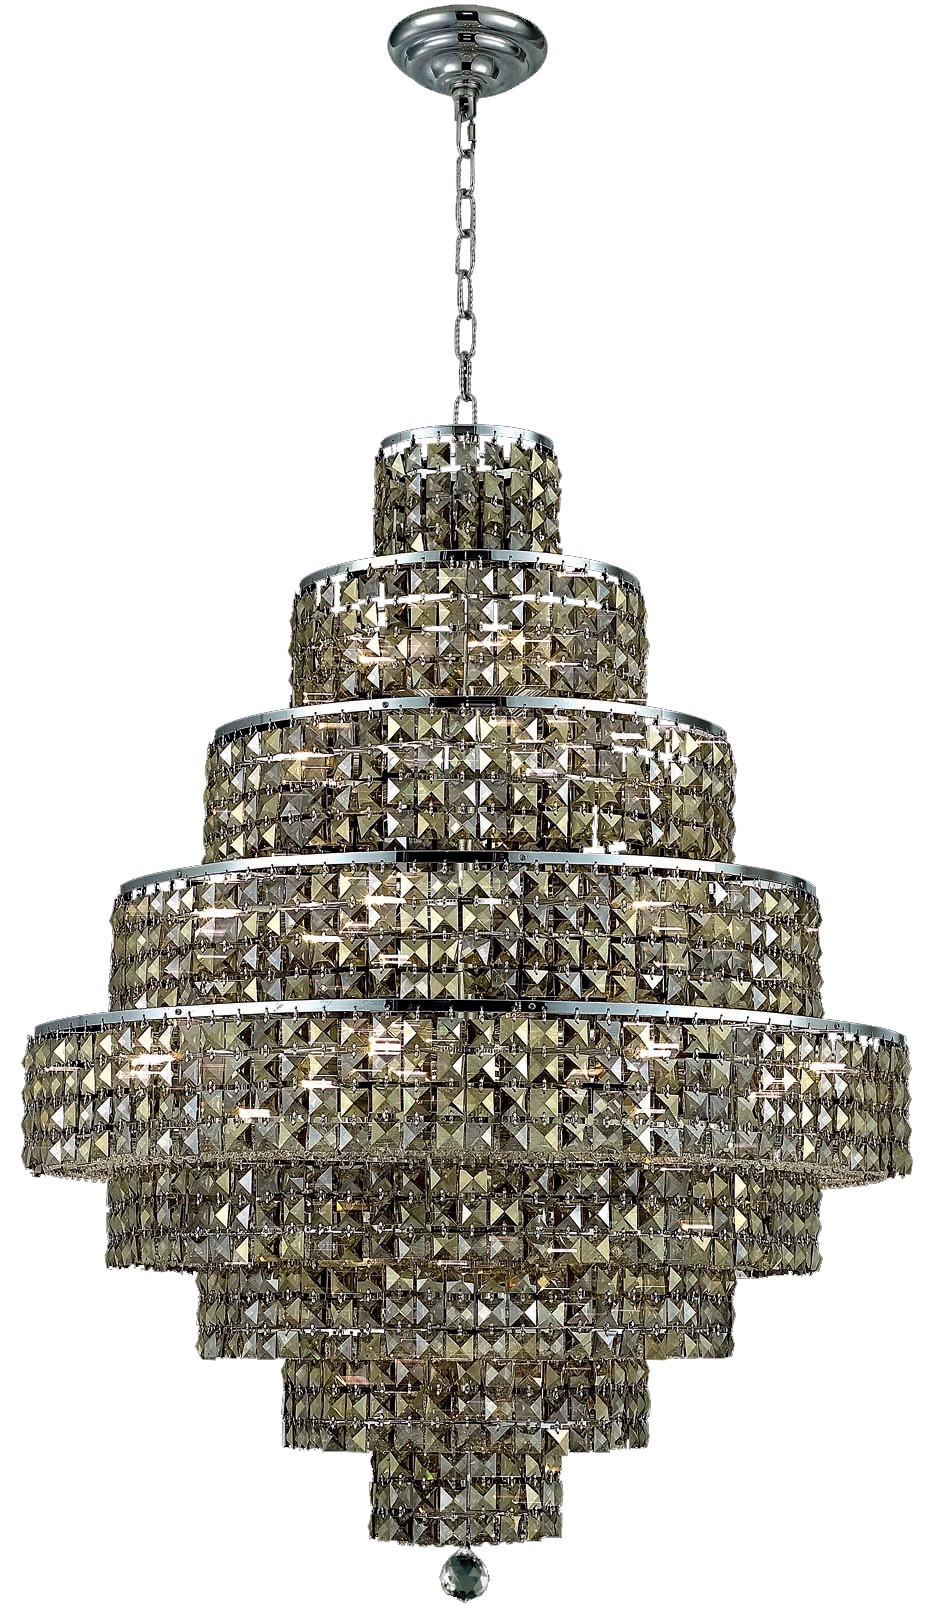 2039 Maxime Collection Chandelier D:30in H:41in Lt:20 Chrome Finish (Swarovski® Elements Crystals)